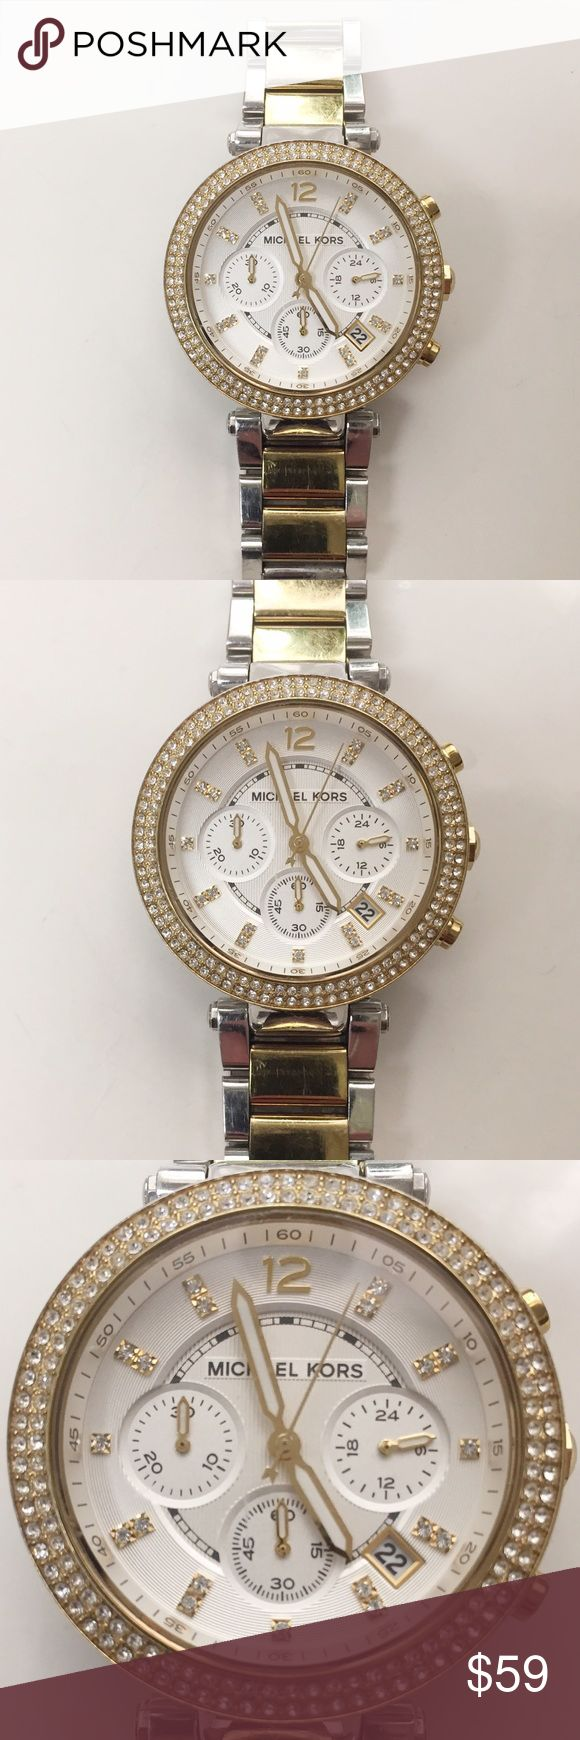 michael kors watch repair near me